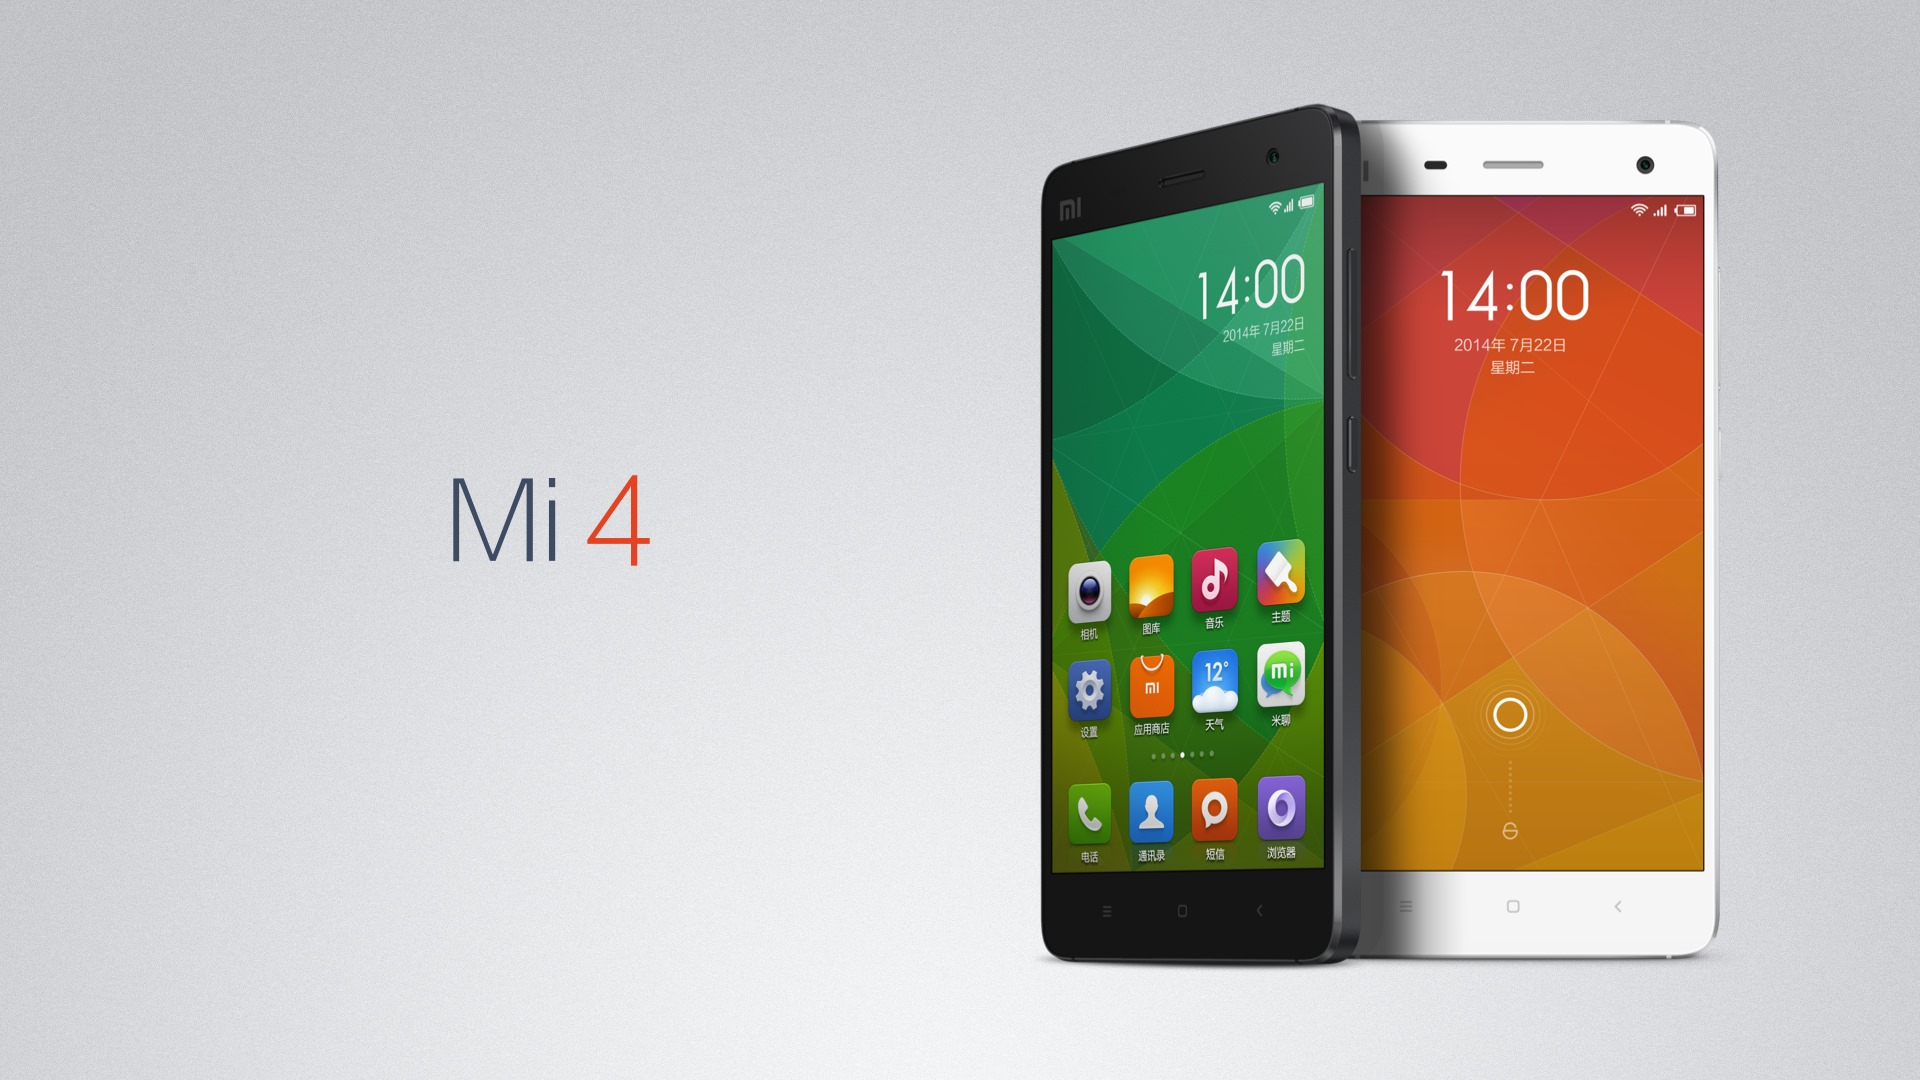 Install Android 5.0.2 Lollipop On Xiaomi Mi4